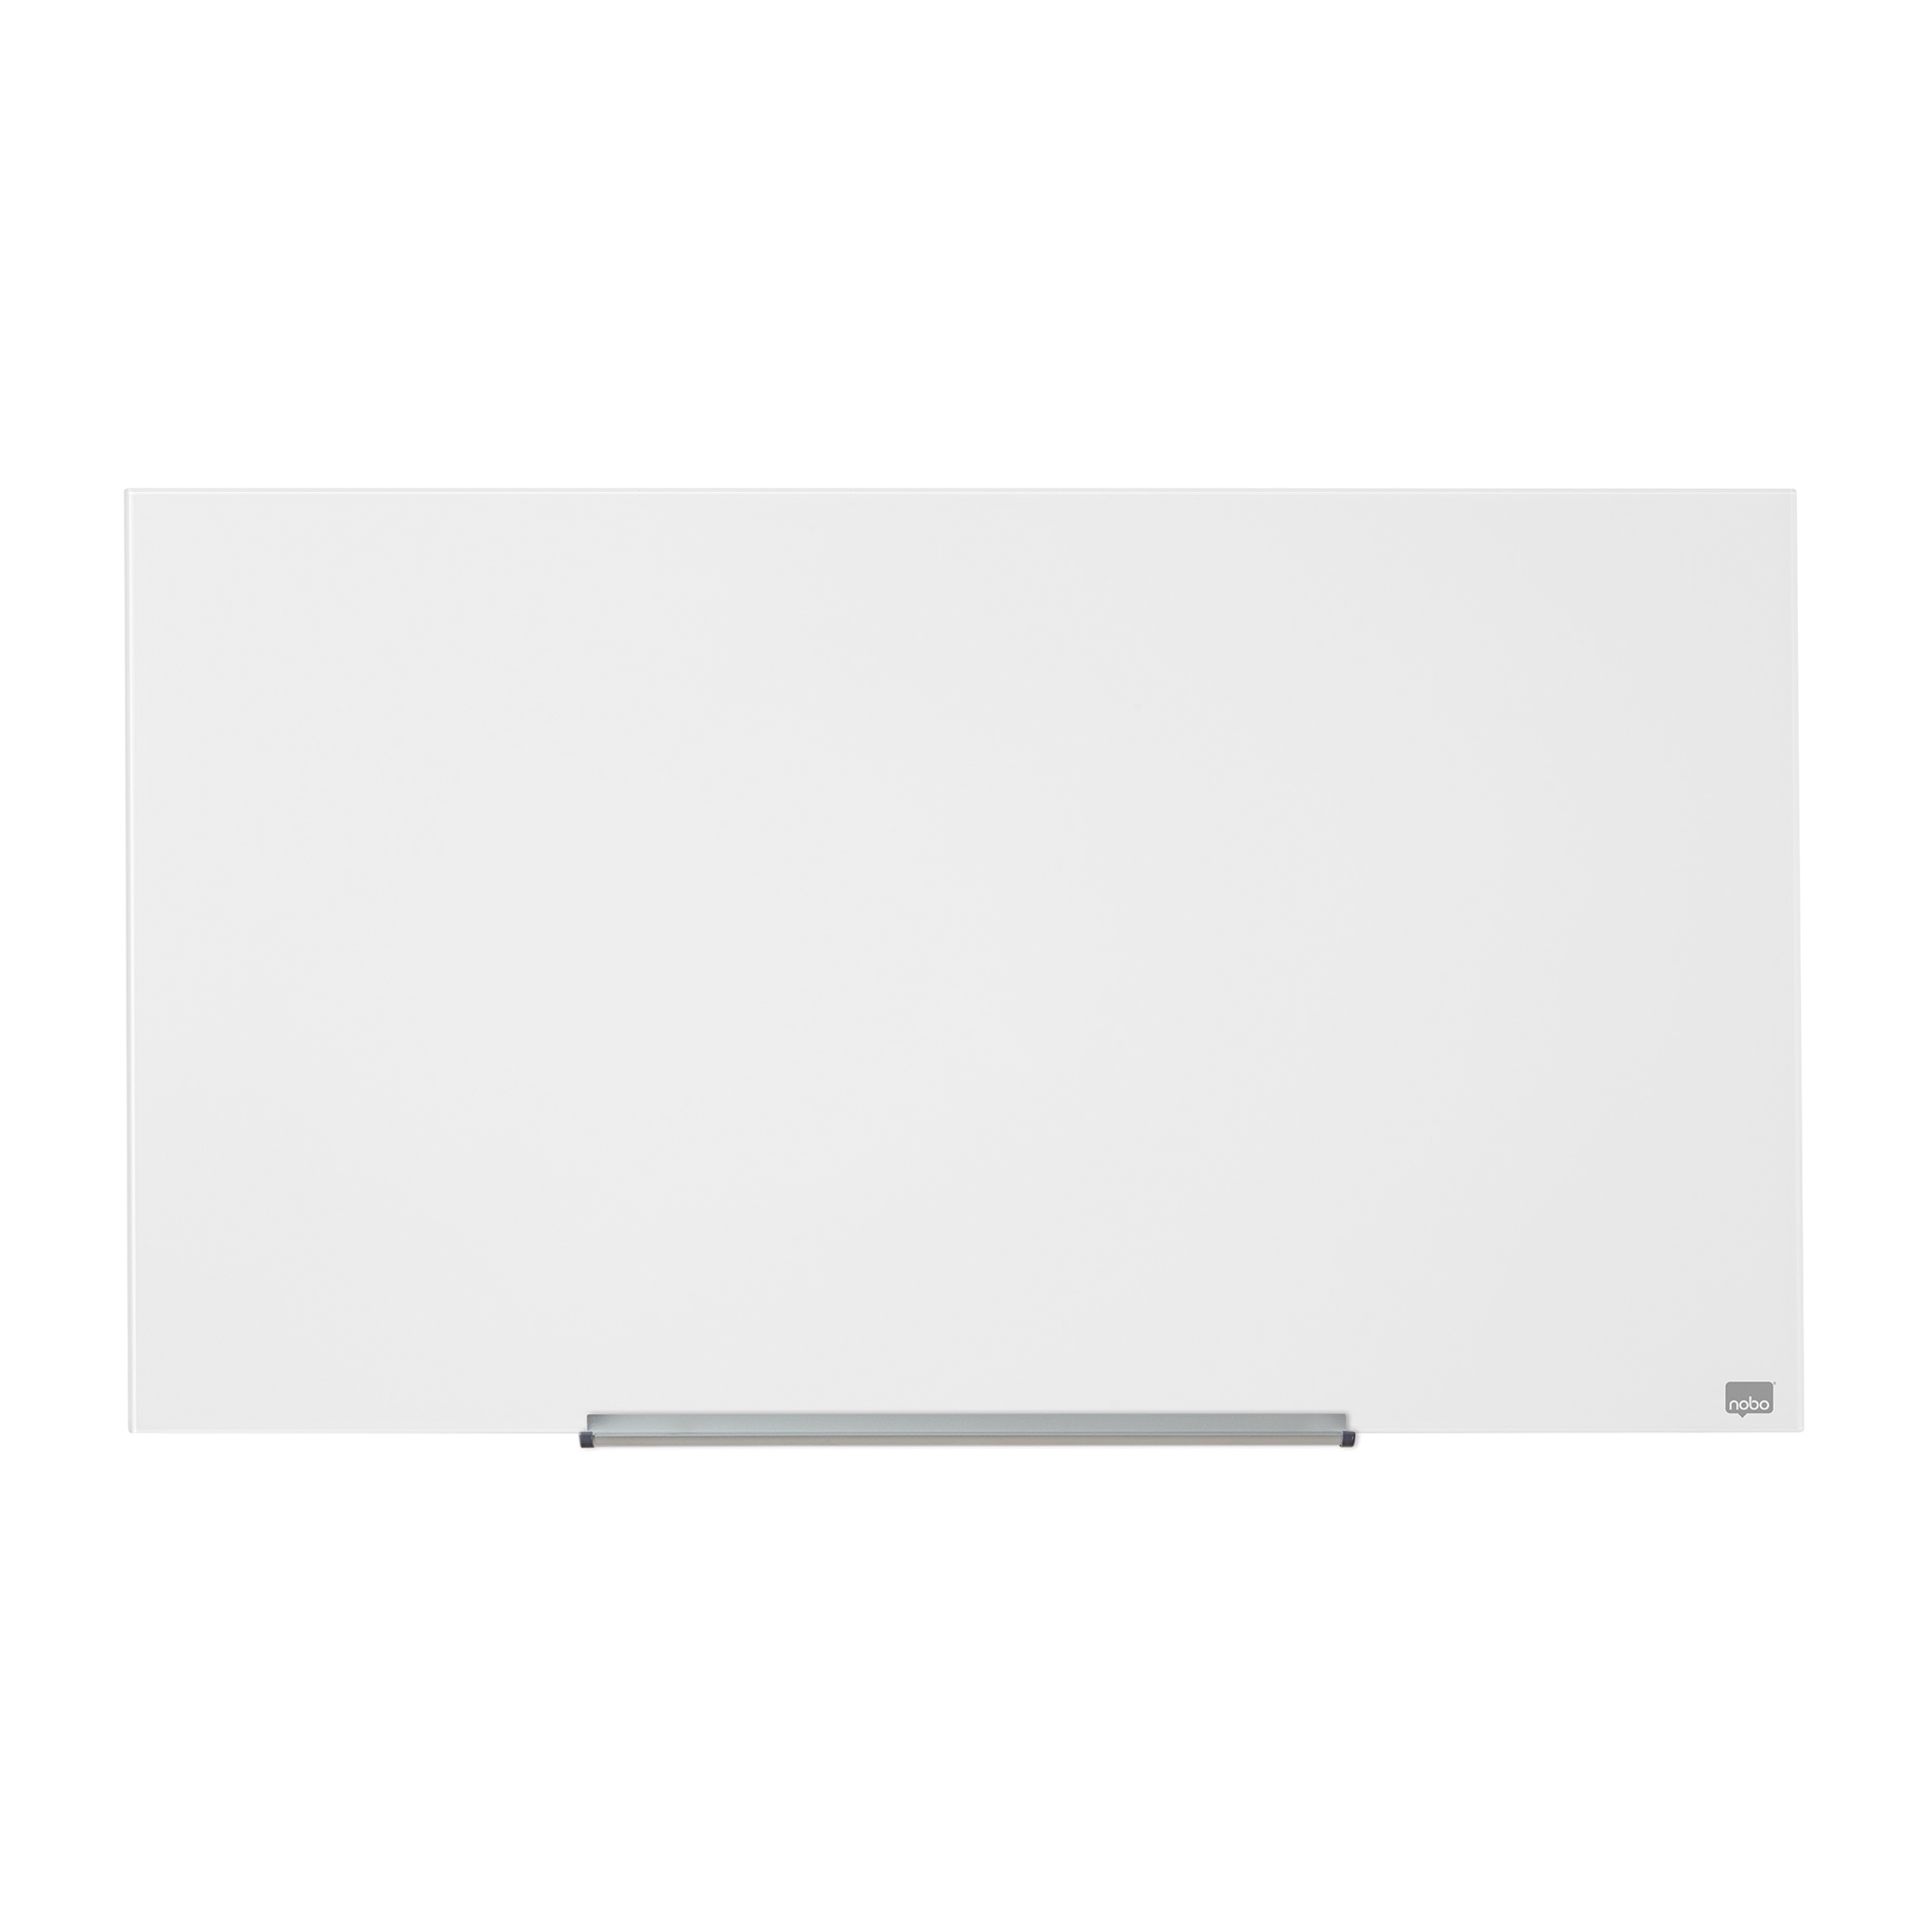 Magnetic Nobo Widescreen 45 inch WhiteBrd Glass Magnetic Scratch-Resistant Fixings Inc W100xH560mm Wht Ref 1905176